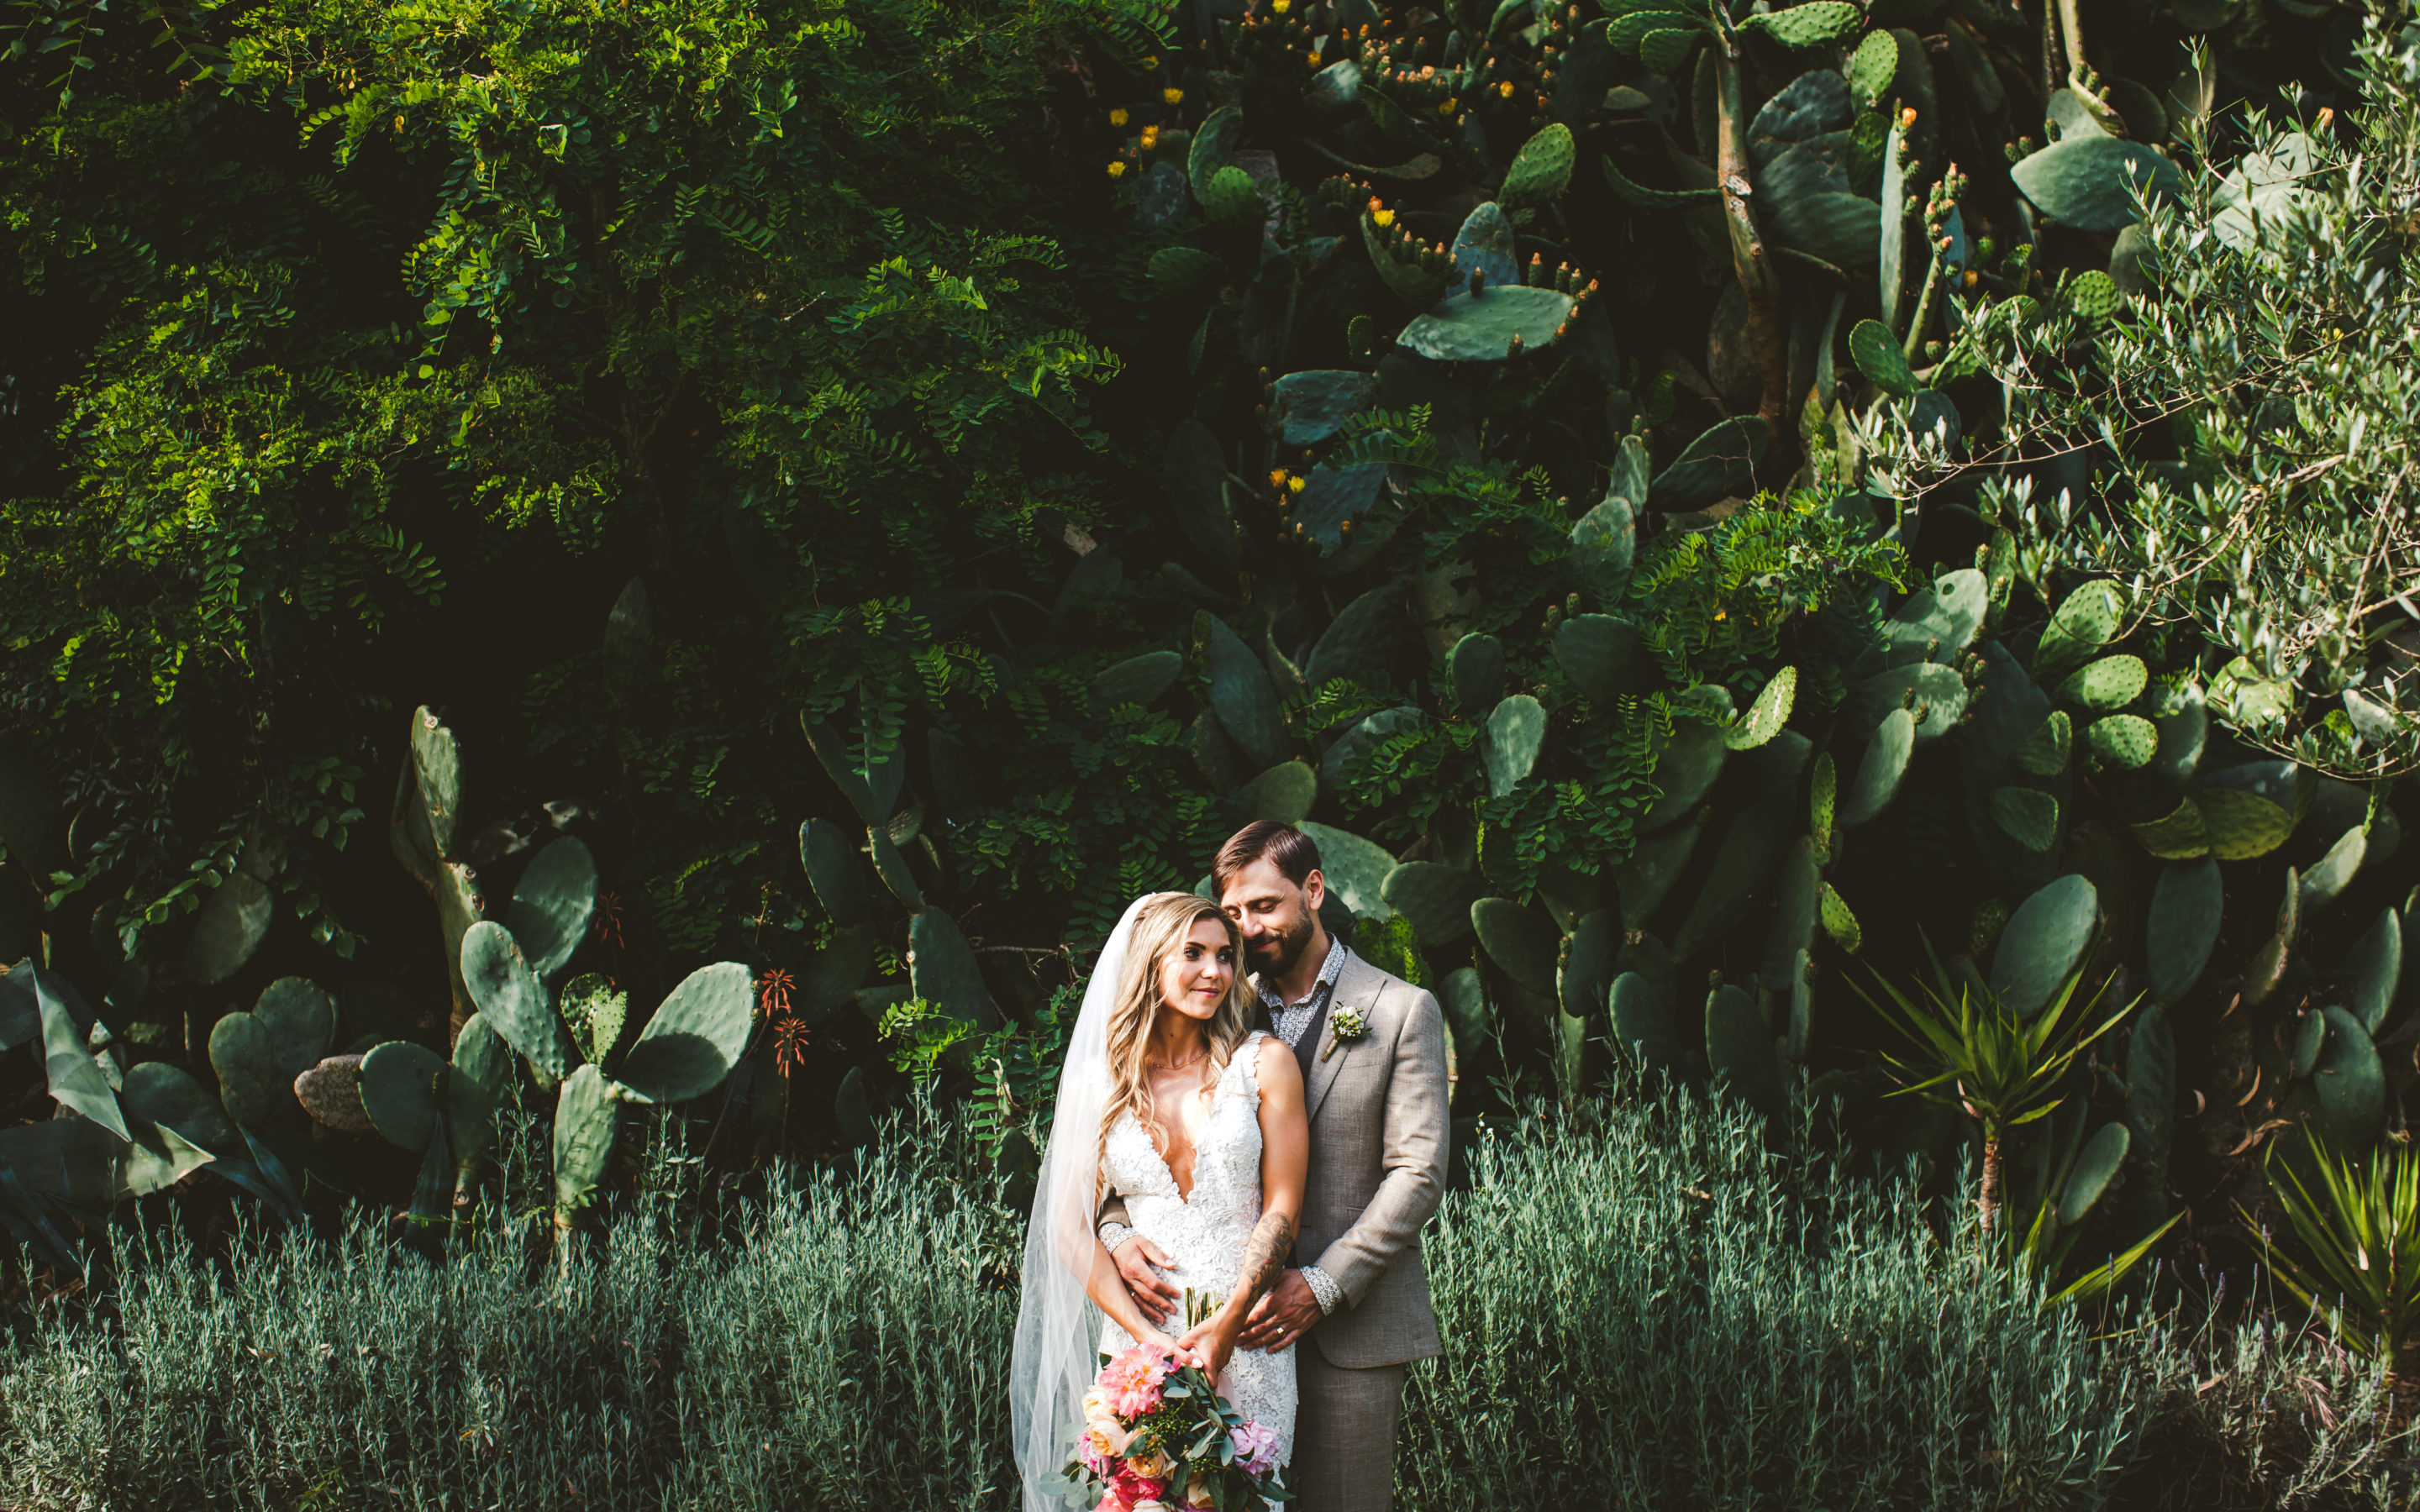 Romantic nordic wedding at Casale Doria Pamphilj